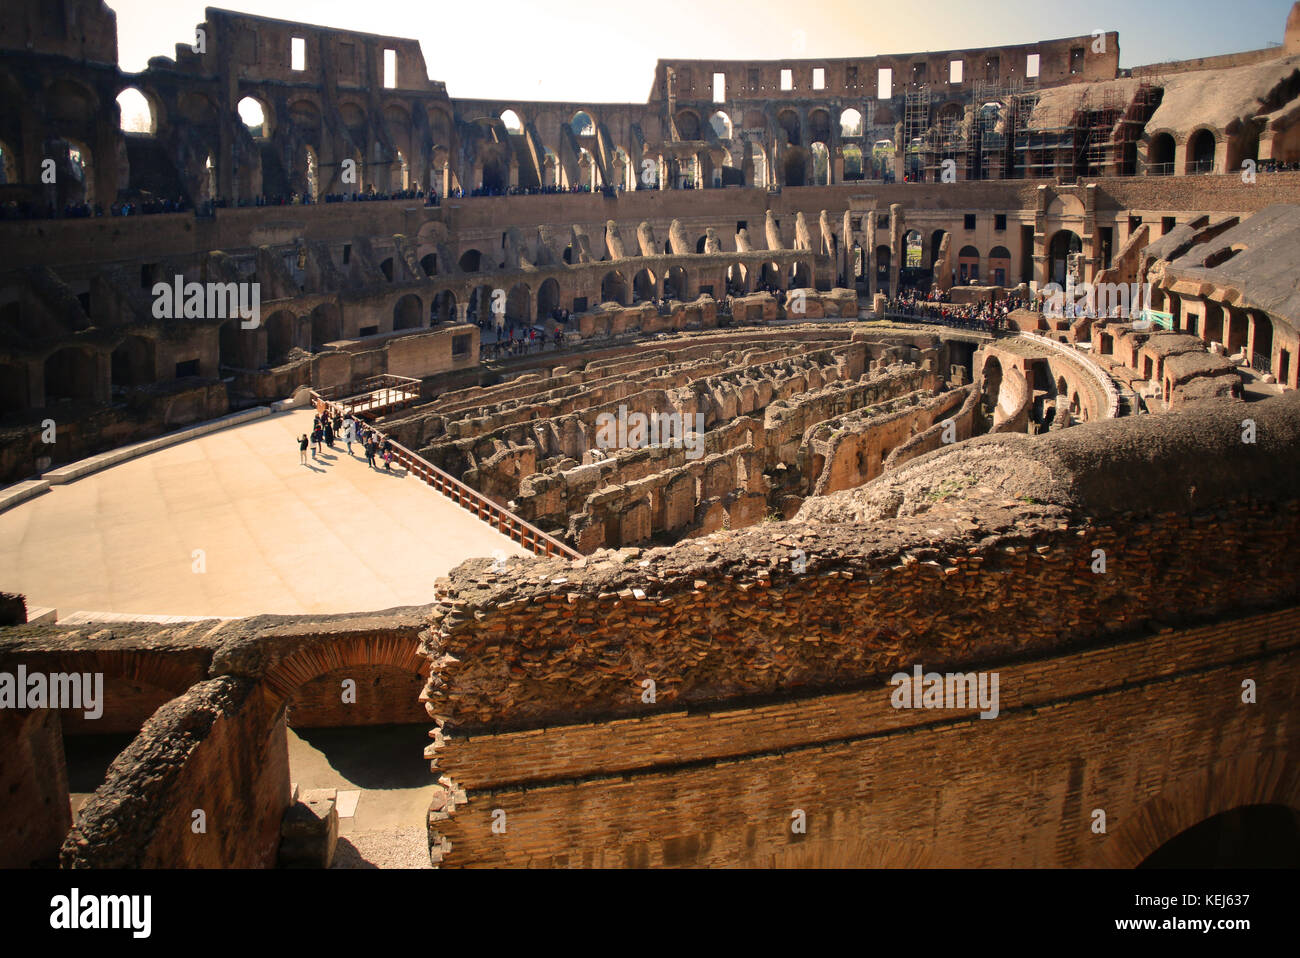 The Colosseum, Rome, Italy - Stock Image